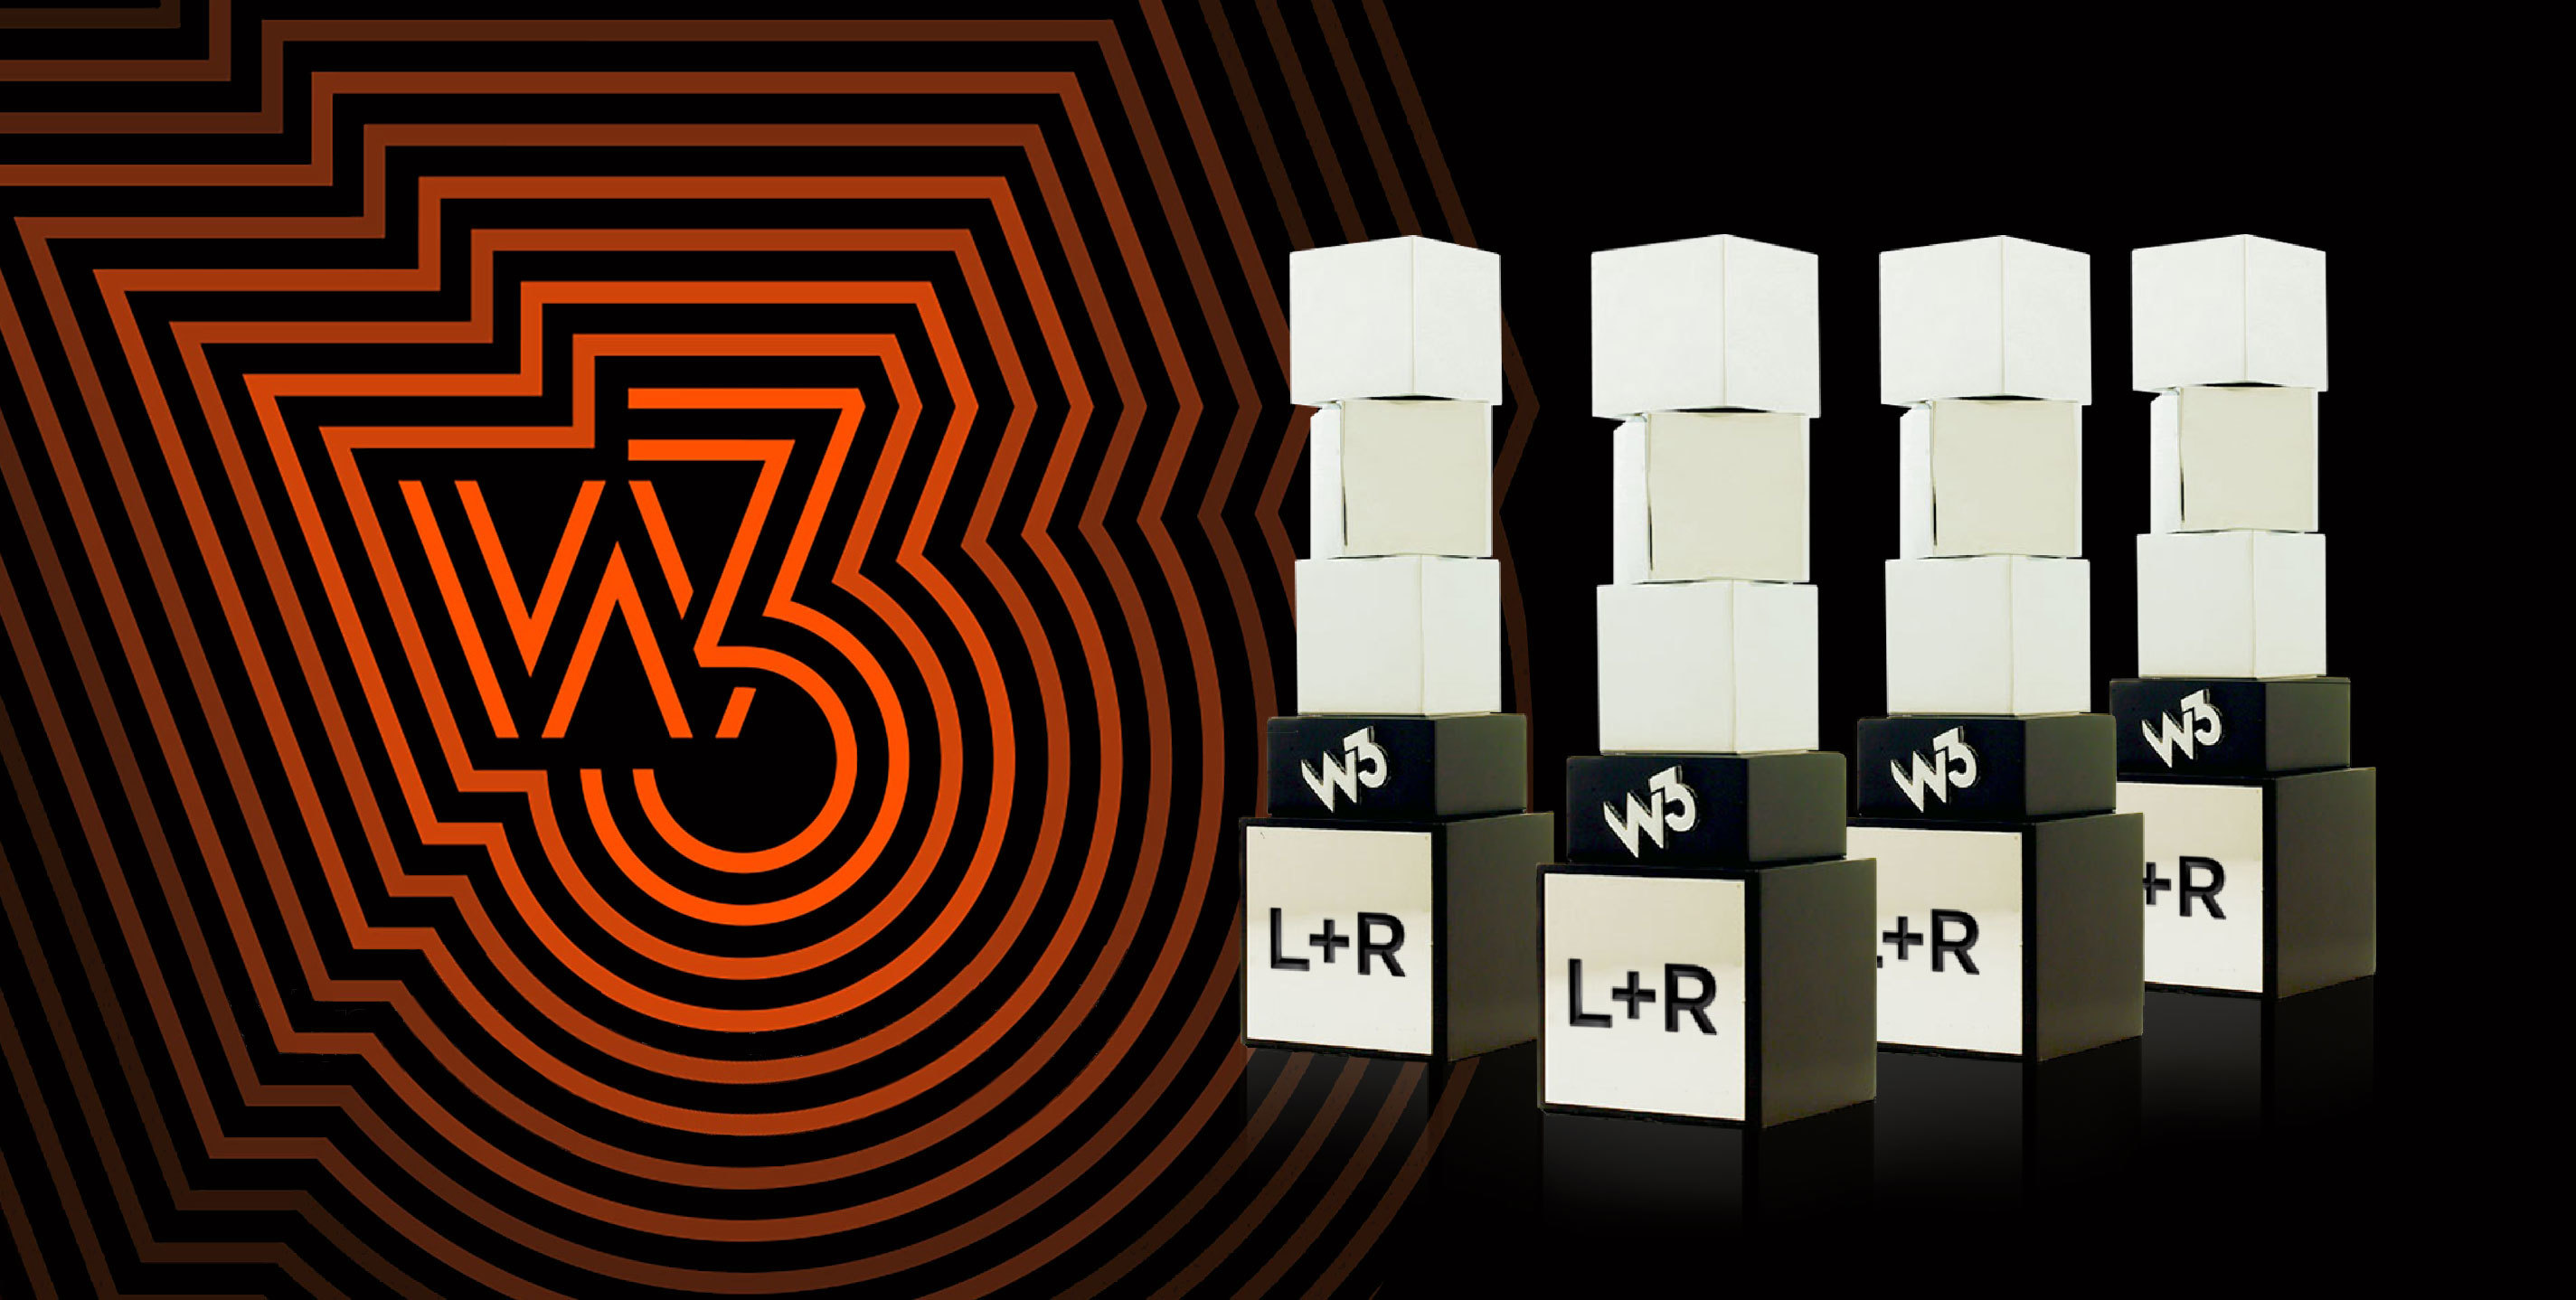 L+R takes home four w3 Awards in 2020